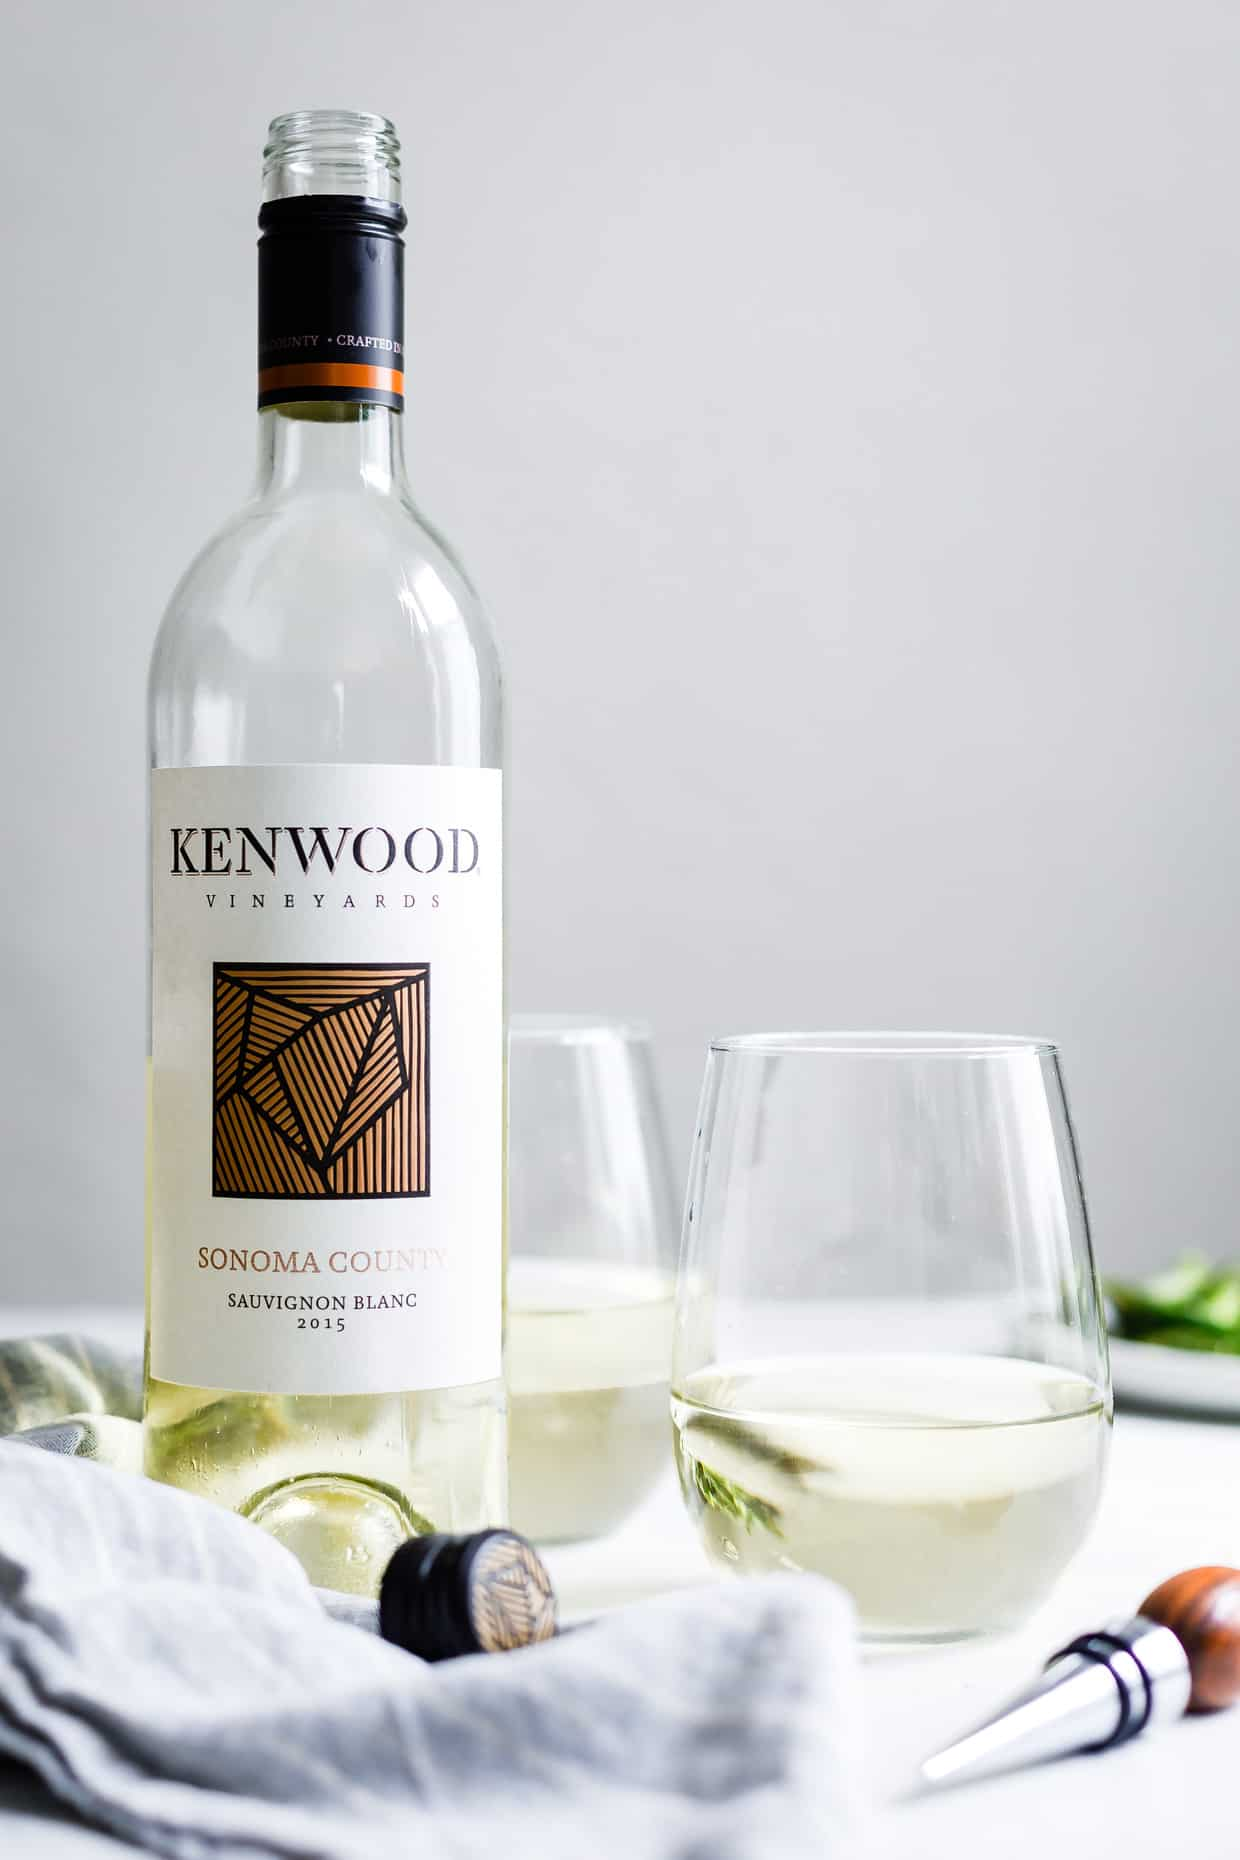 Kenwood Vineyards Sauvignon Blanc